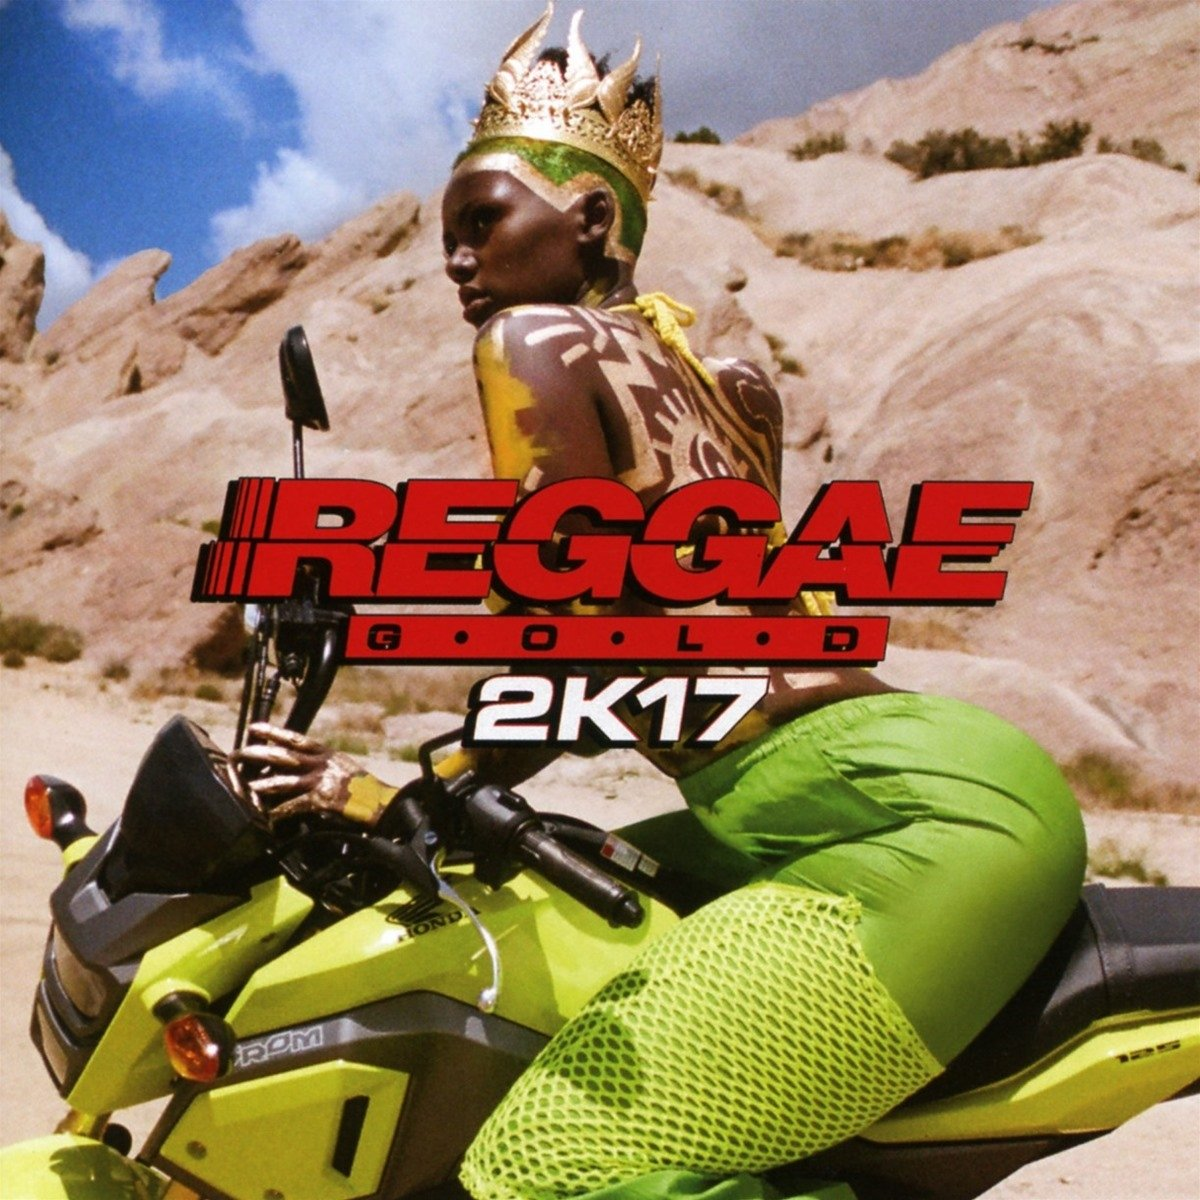 VA - Reggae Gold 2K17 - (VP2649) - 2CD - FLAC - 2017 - YARD Download